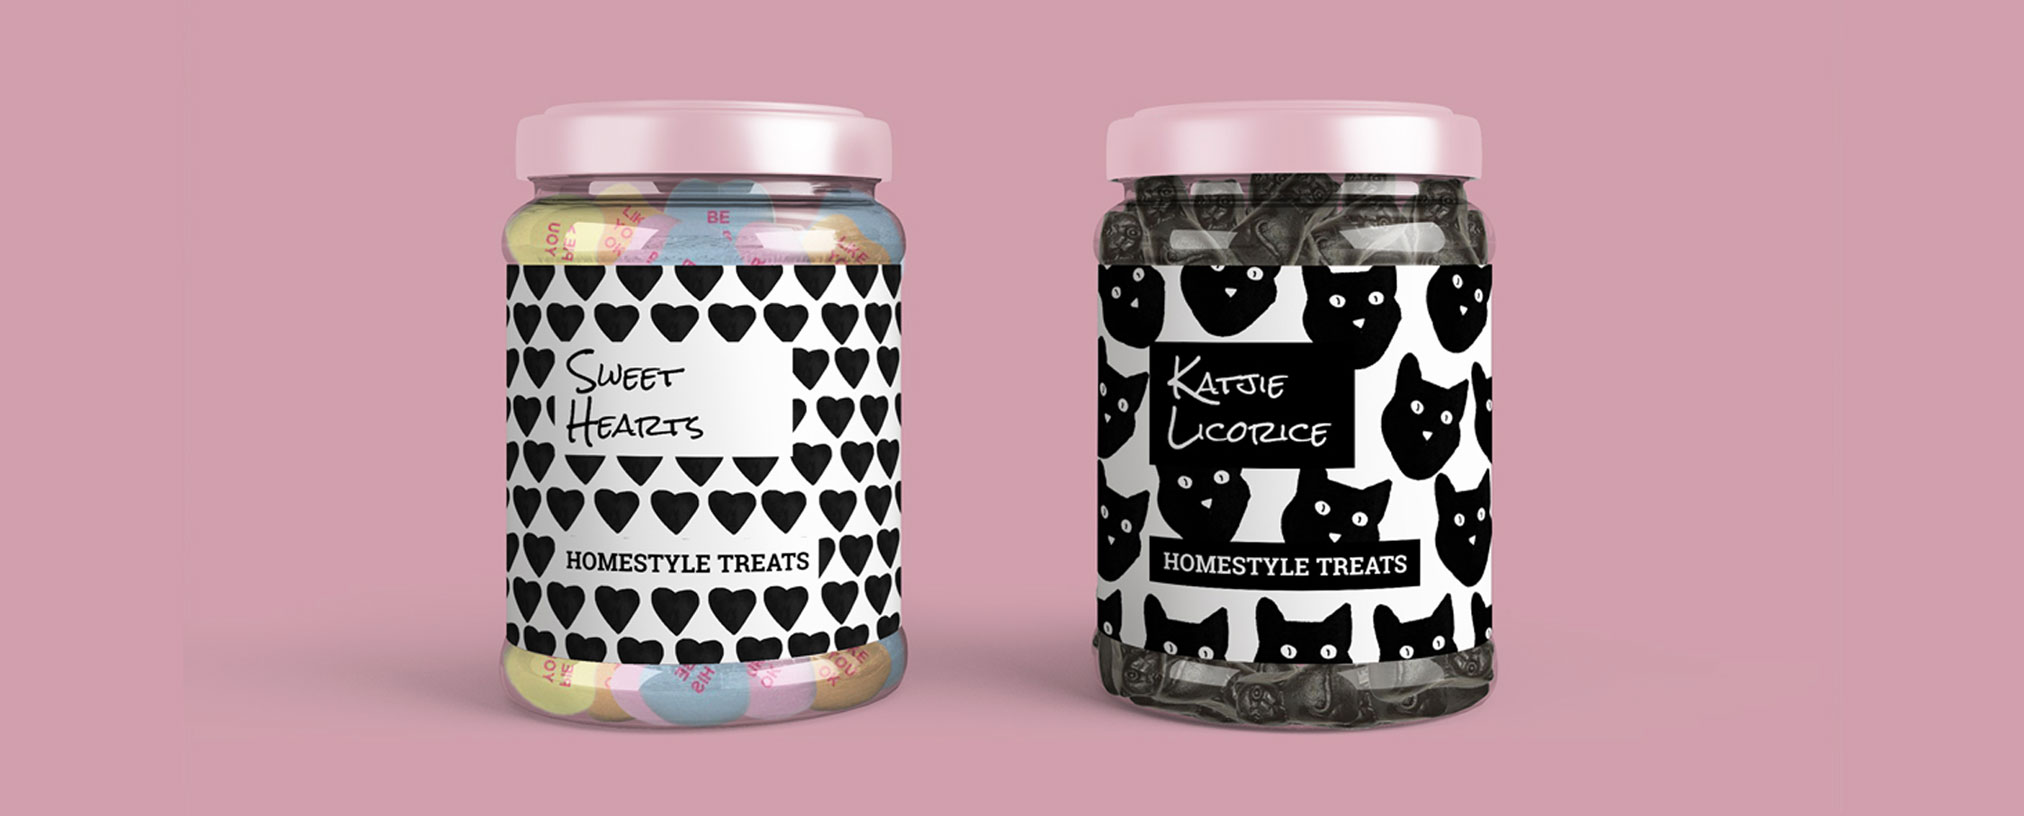 artisanal lifestyle sweets brand label and packaging black and white he